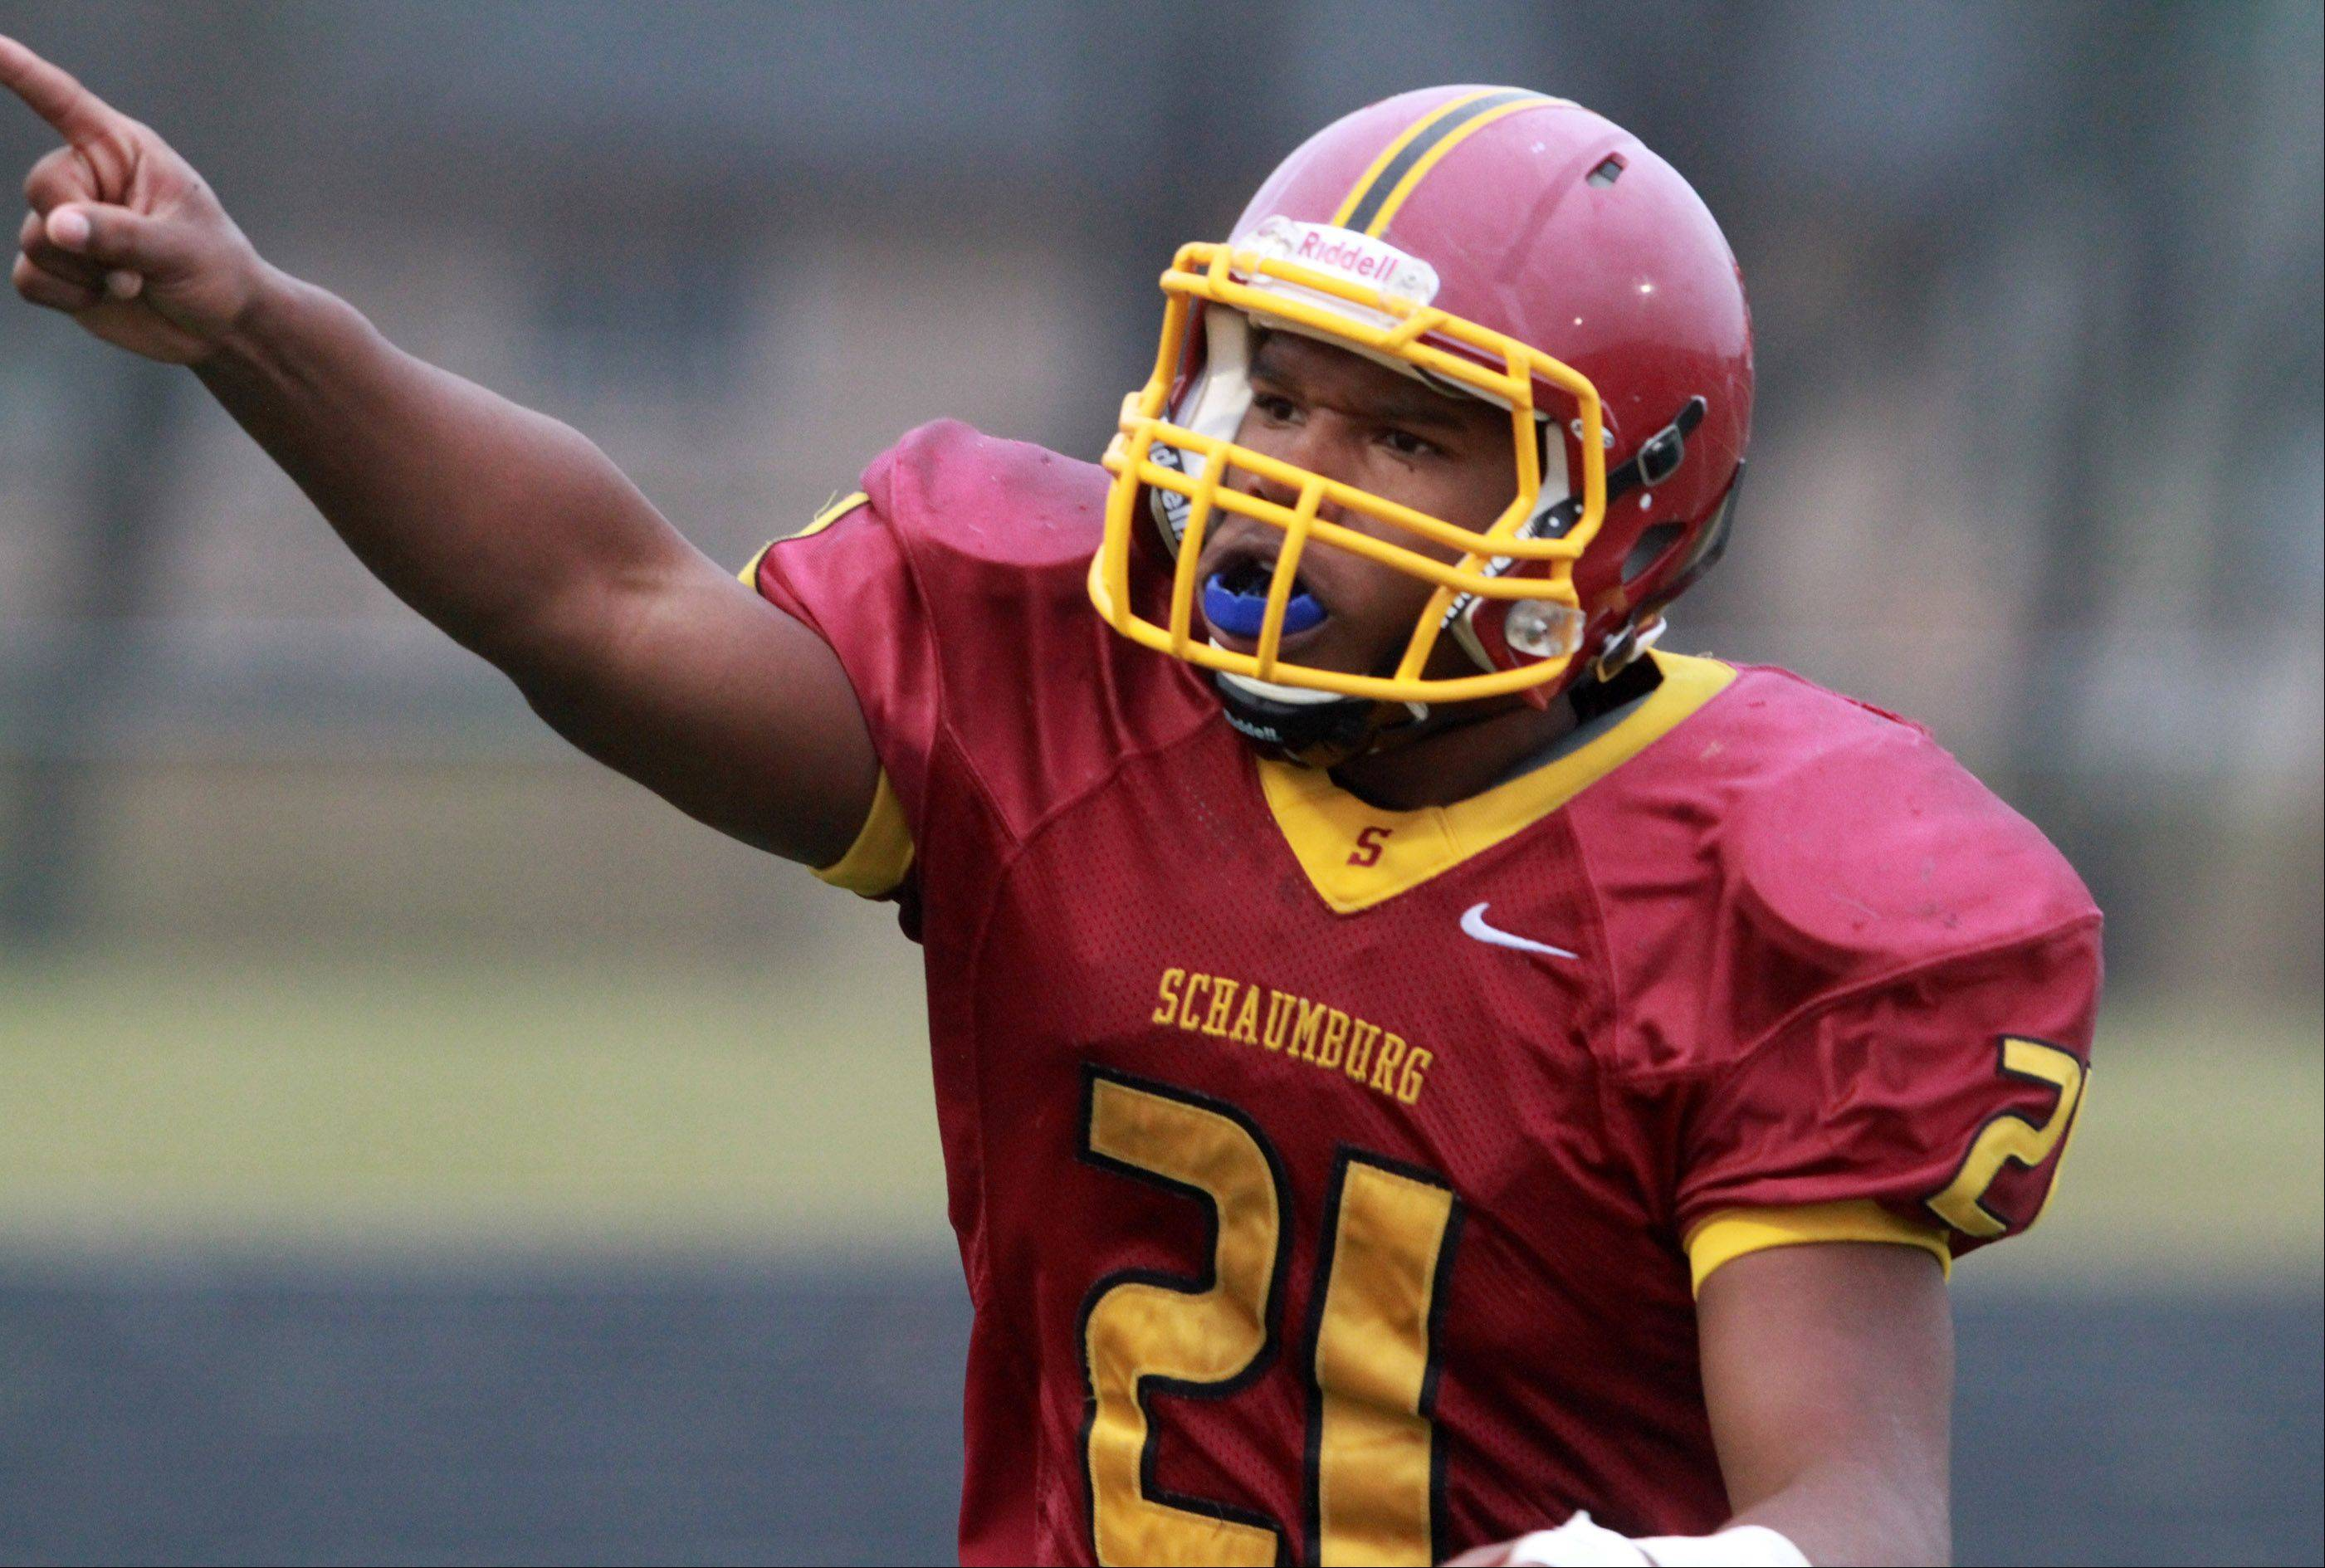 Schaumburg Justice Macneal-Young celebrates running for a touchdown against Glenbard West in a quarterfinal playoff game on Saturday in Schaumburg.